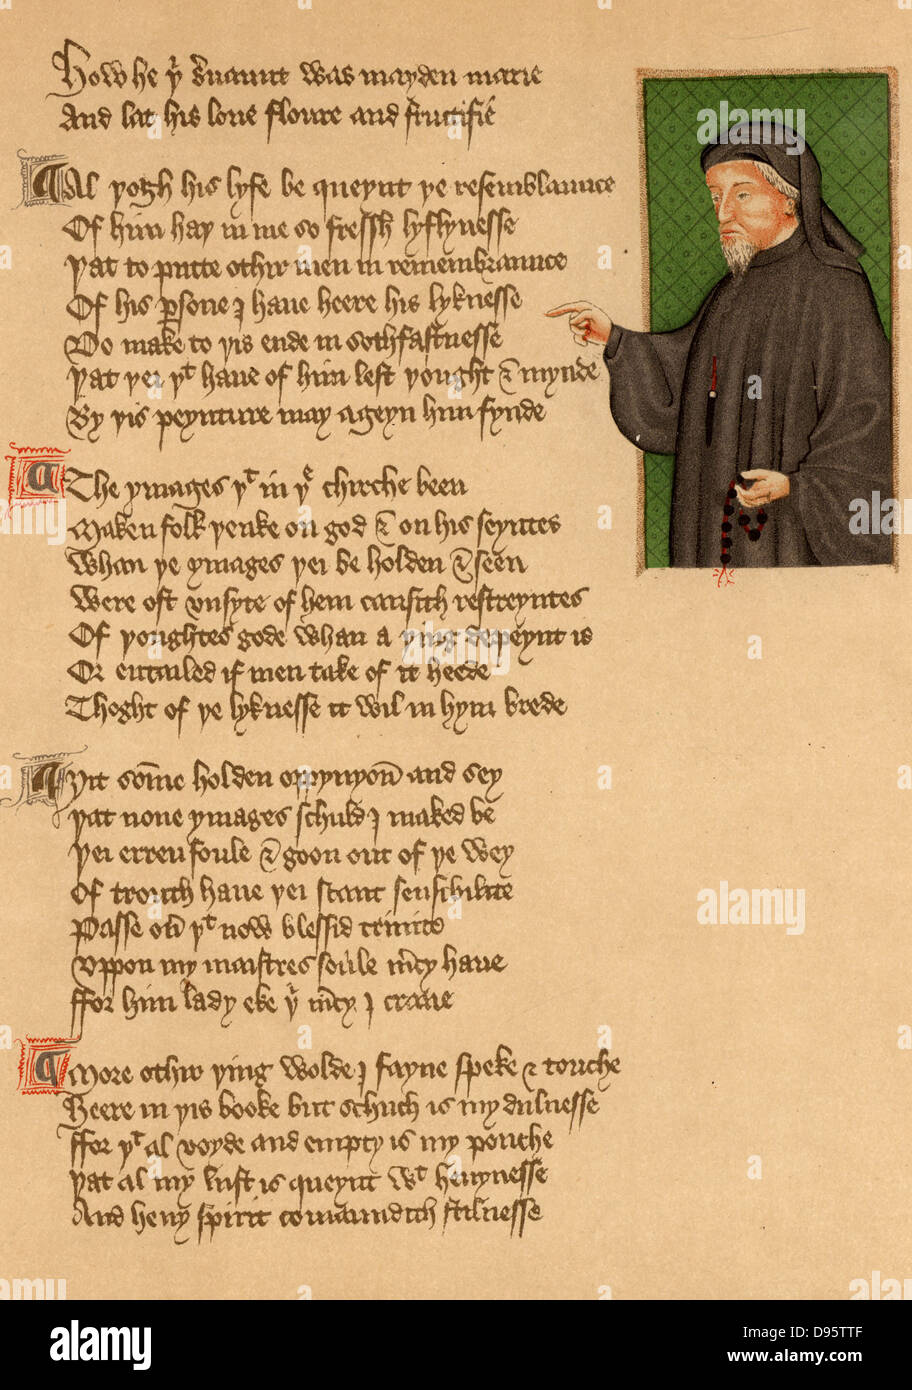 Geoffrey Chaucer (c1345-1401) English poet. Portrait from an early 15th century manuscript of the poem 'De Regimine - Stock Image